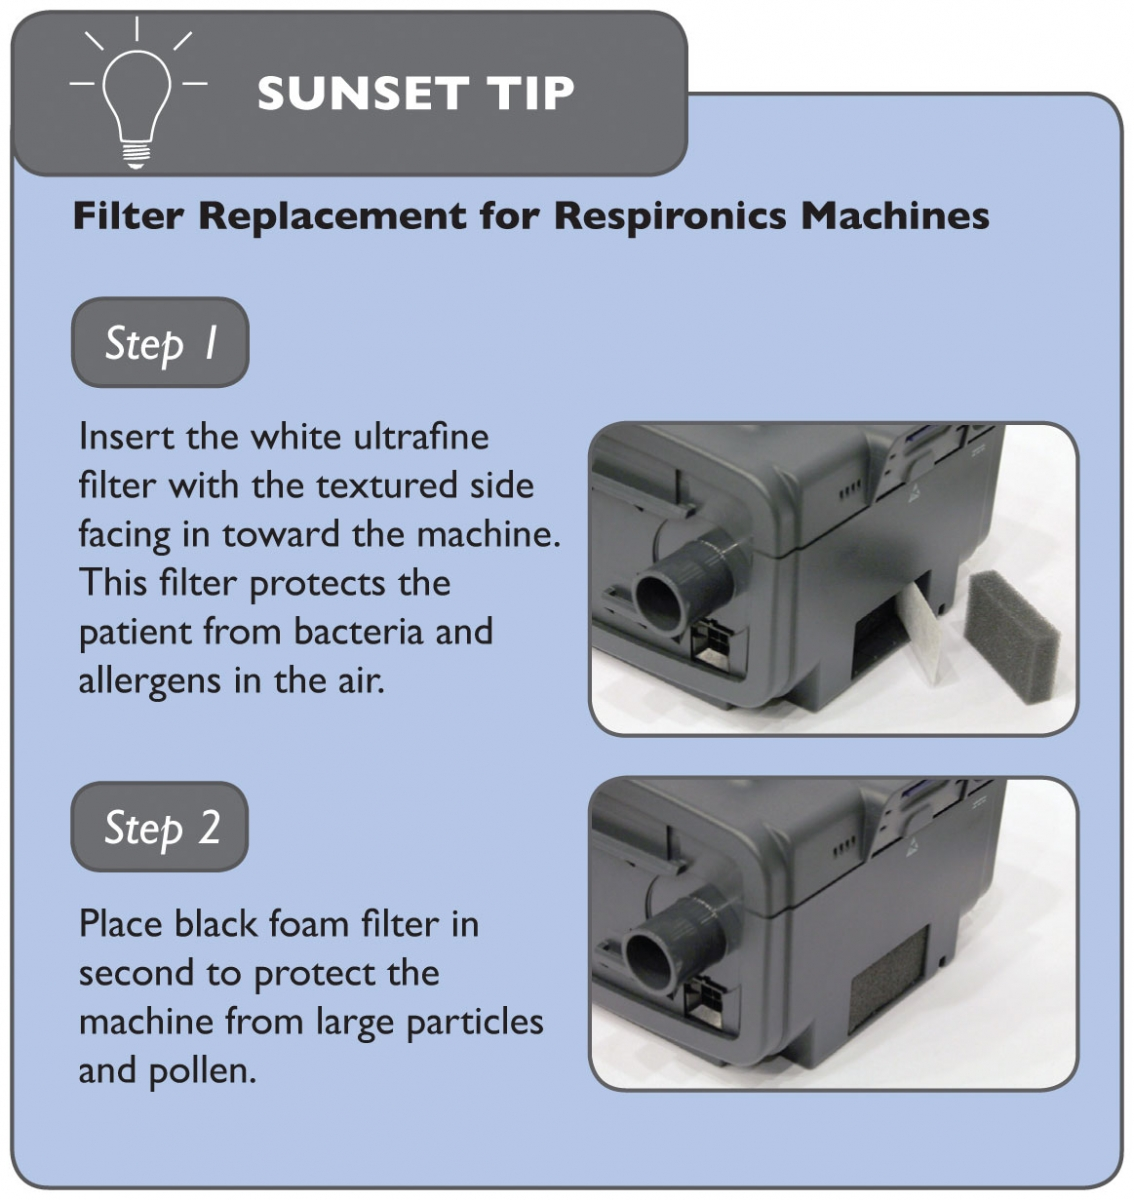 Sunset Healthcare Solutions has created simple patient instructions -- in this case, for replacing filters.